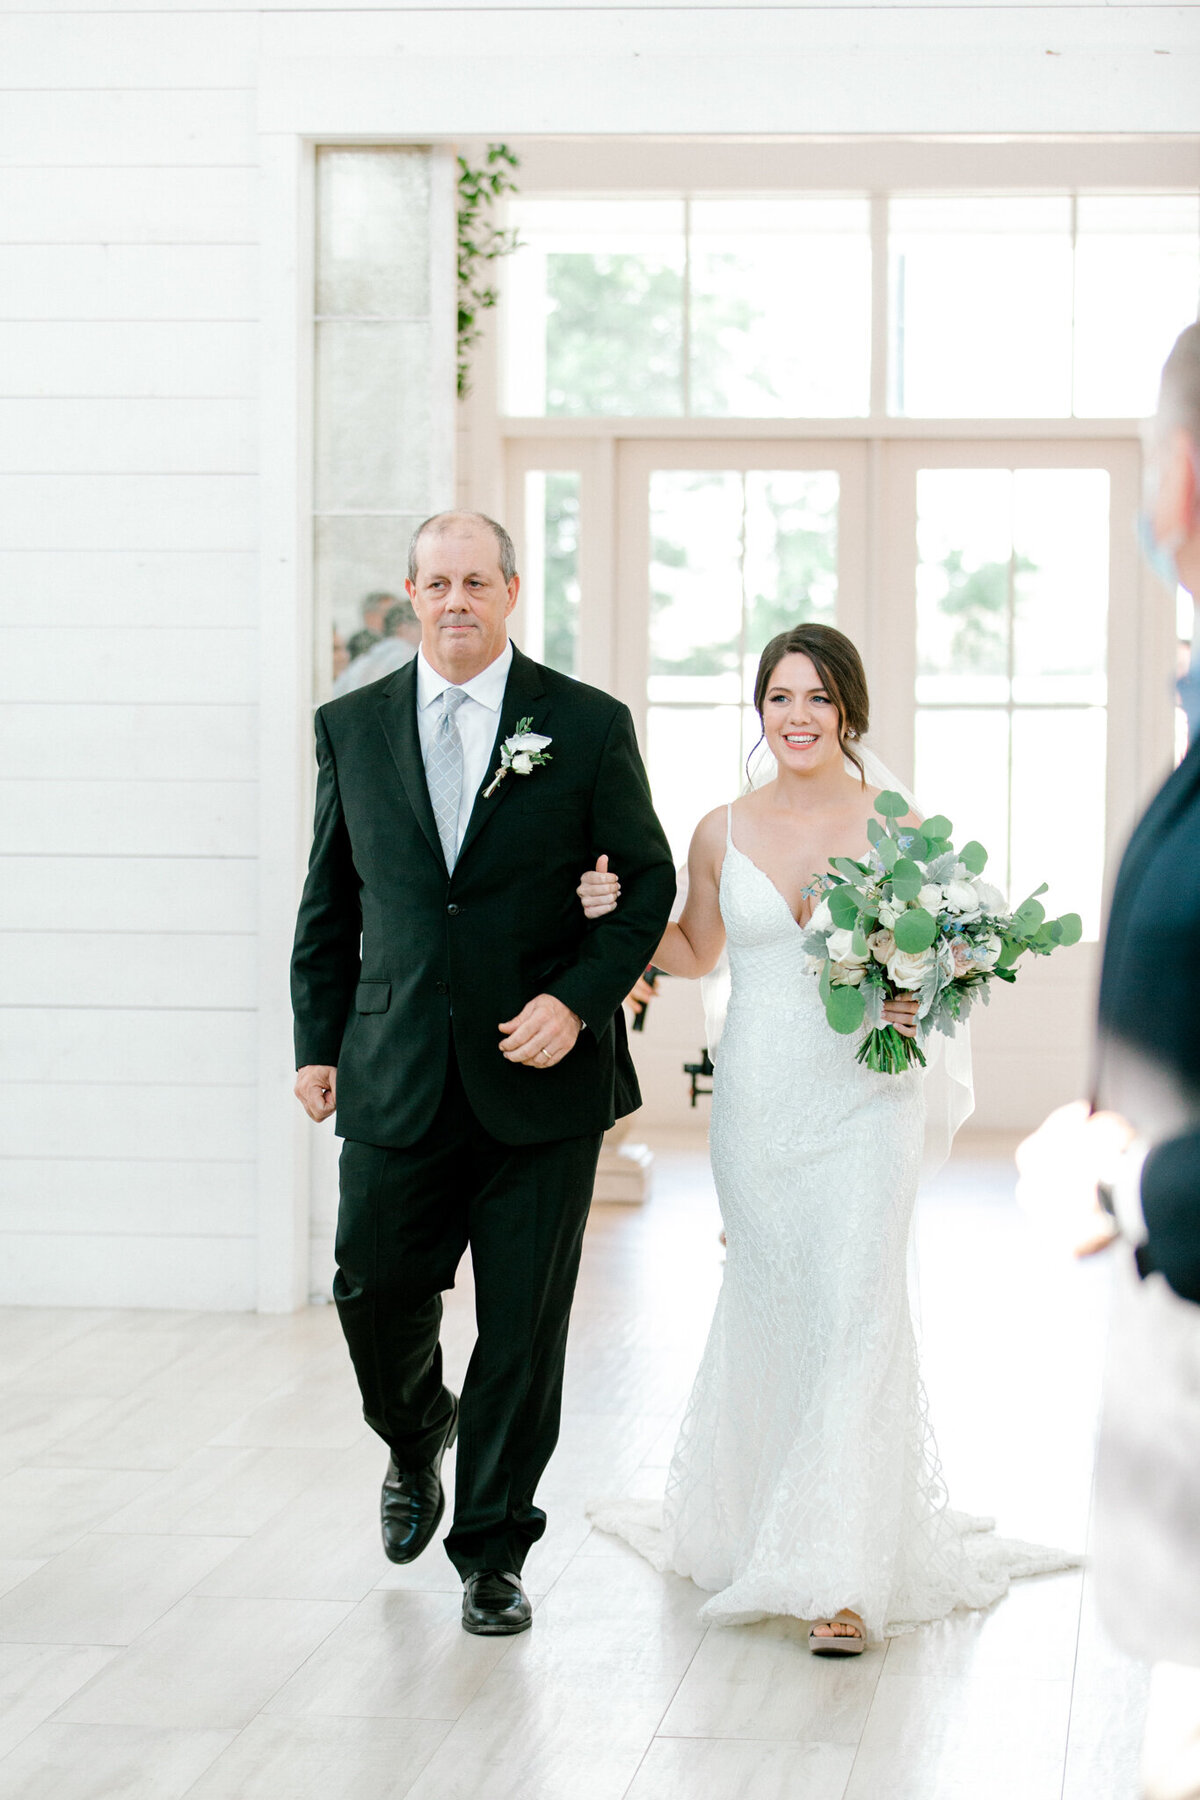 Anna & Billy's Wedding at The Nest at Ruth Farms | Dallas Wedding Photographer | Sami Kathryn Photography-69